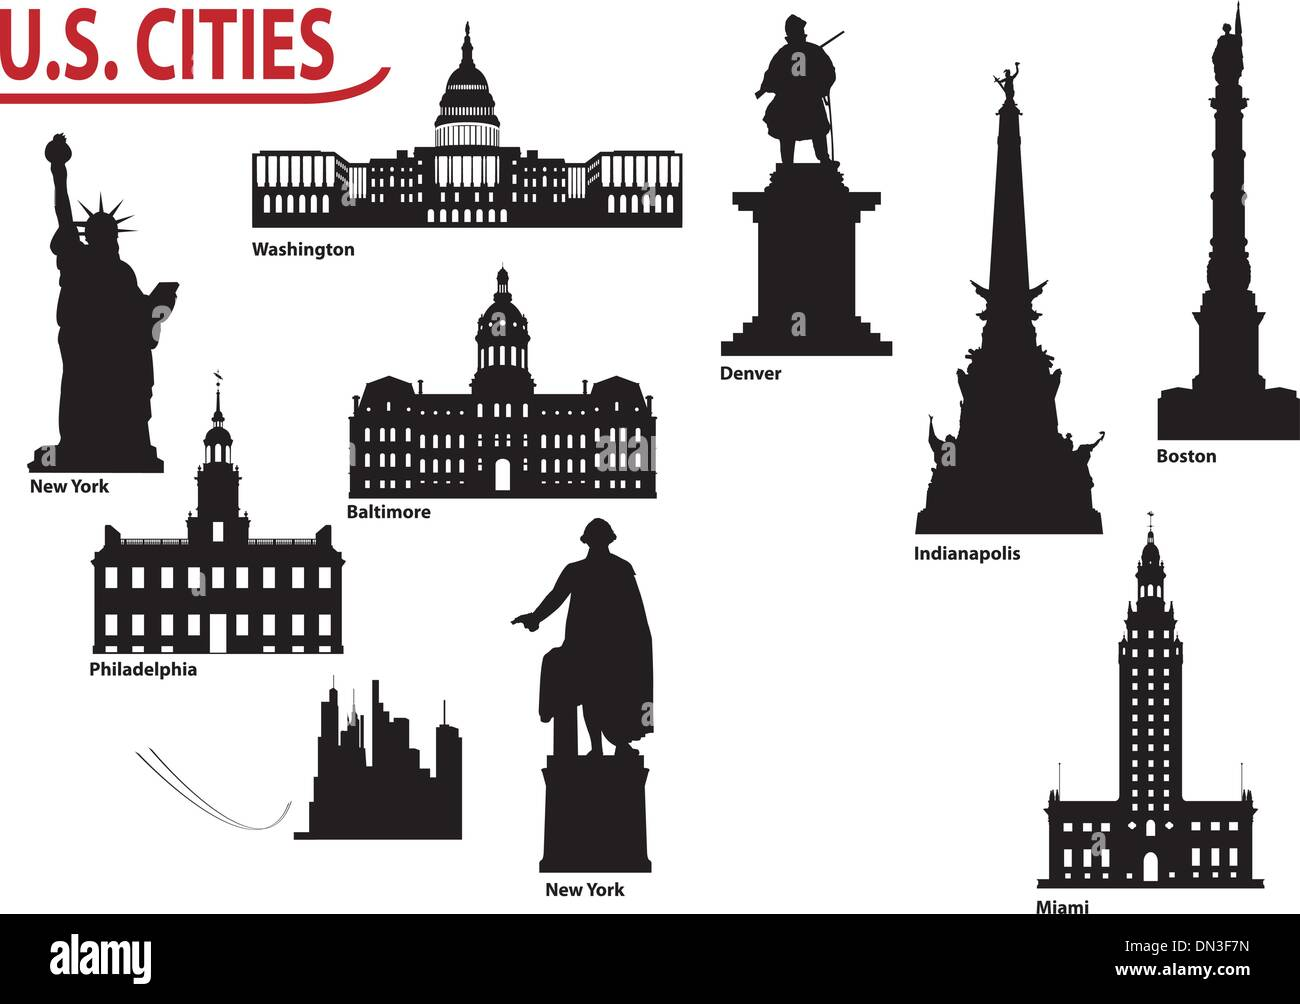 Silhouettes of U.S. cities - Stock Vector